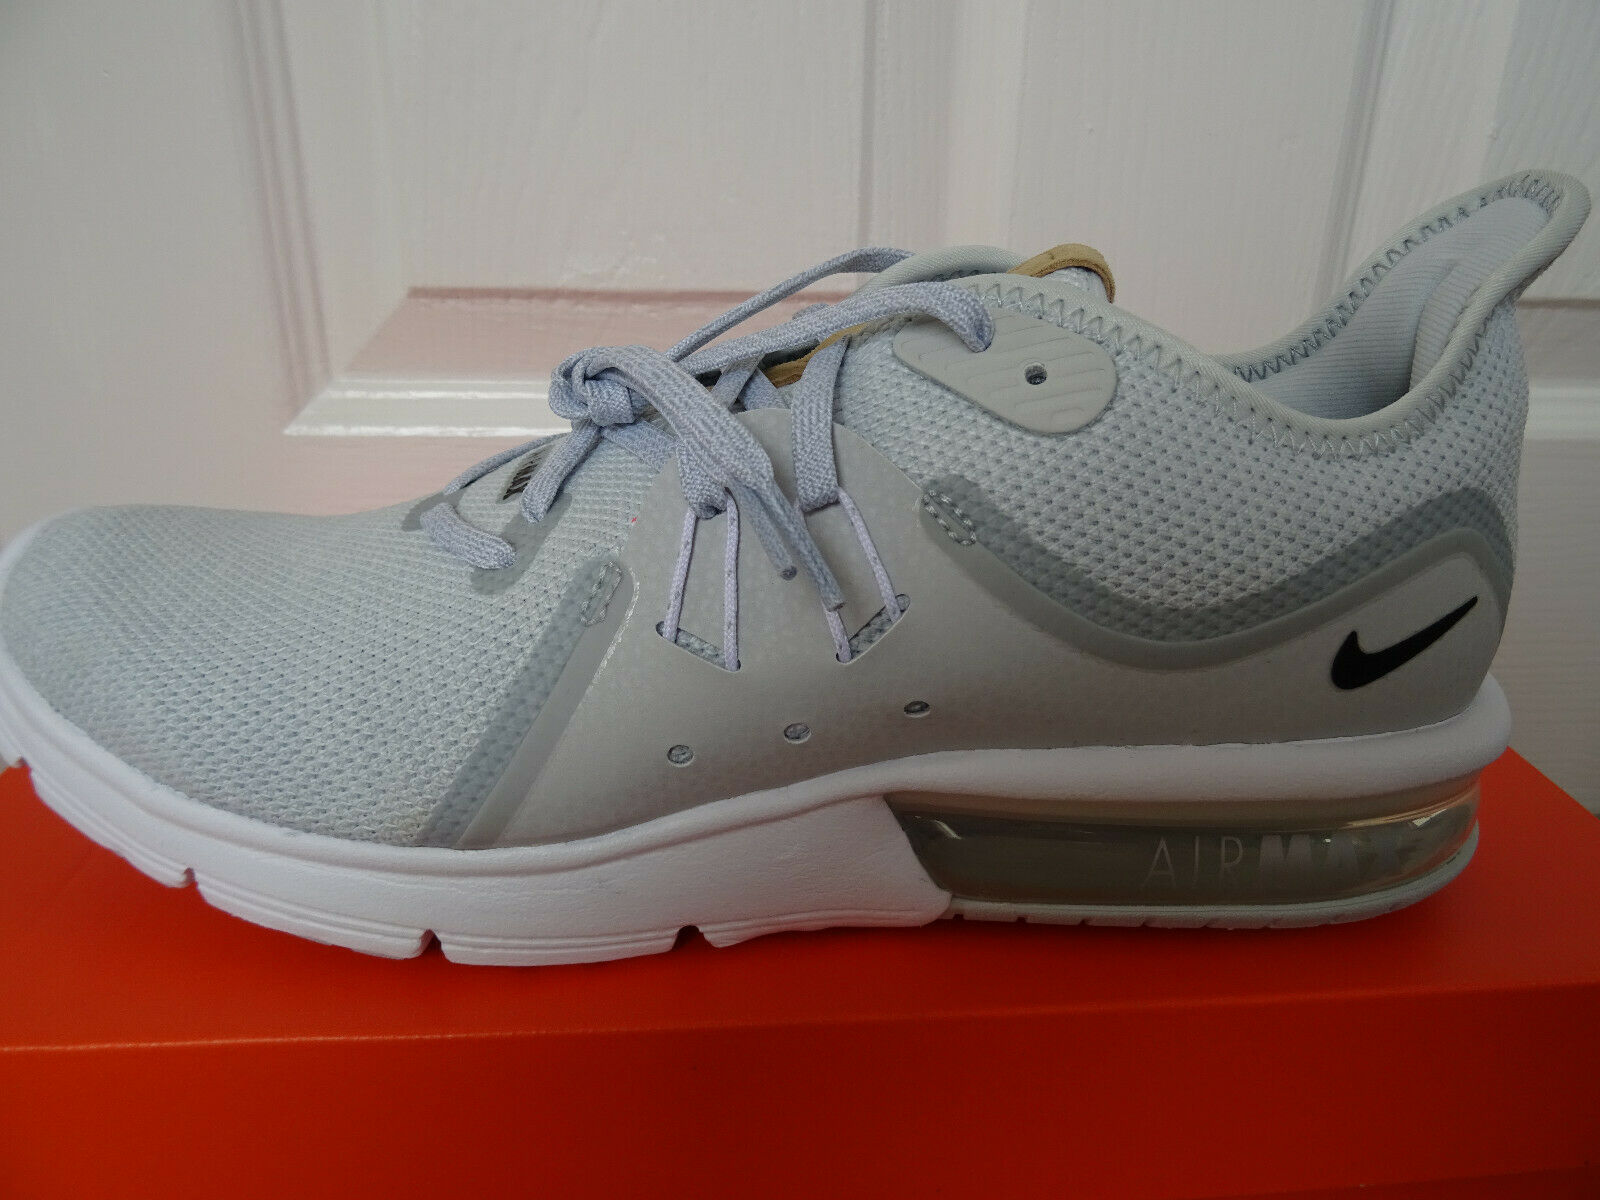 Nike Air Max Sequent 3 trainers schuhe 921694 008 uk 7 eu 41 us 8 NEW IN BOX